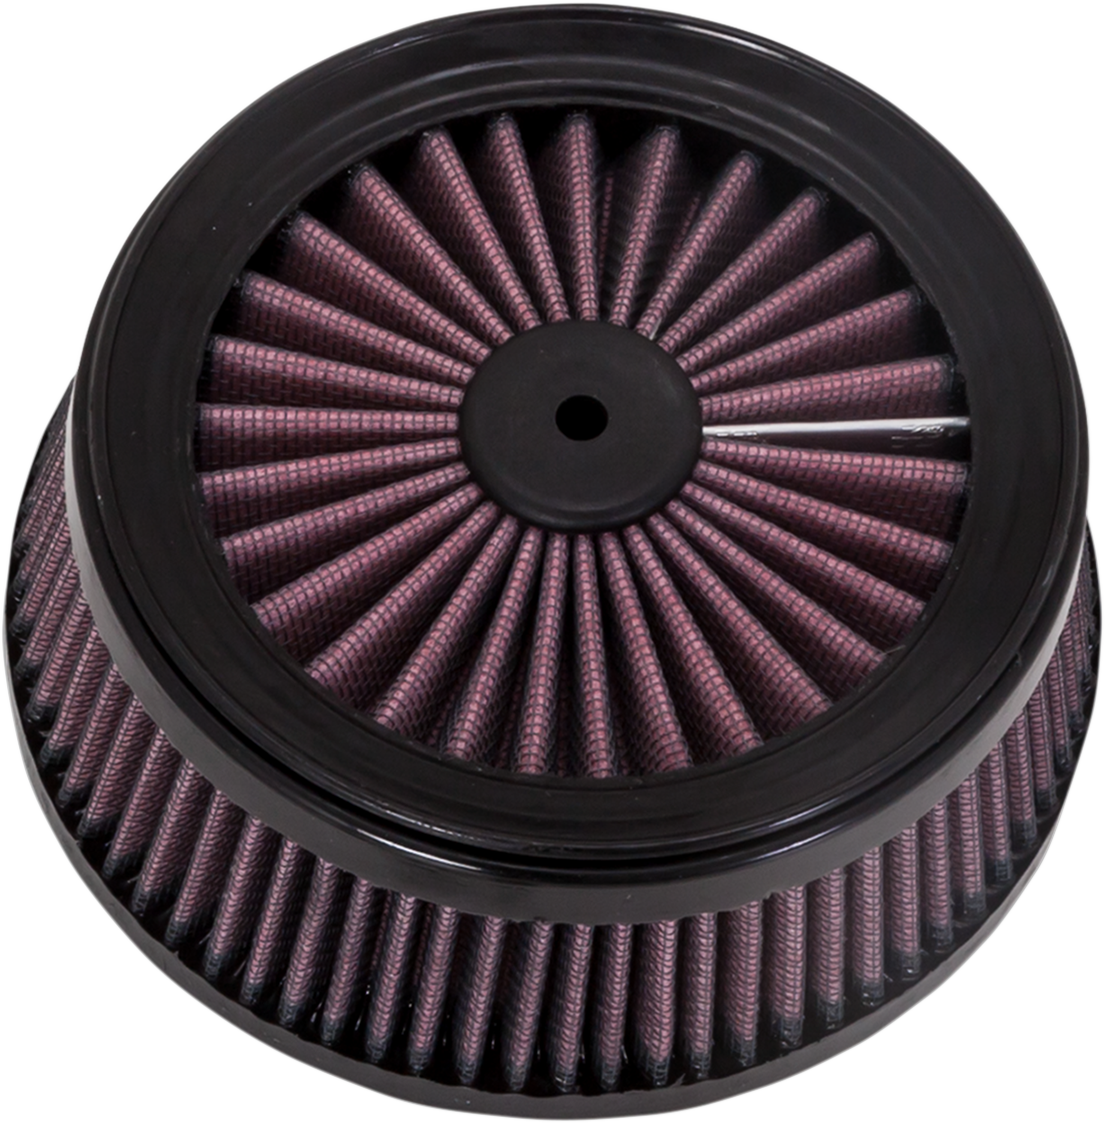 Vance & Hines Red Replacement VO2 Rogue Air Filter Element for Harley Davidson